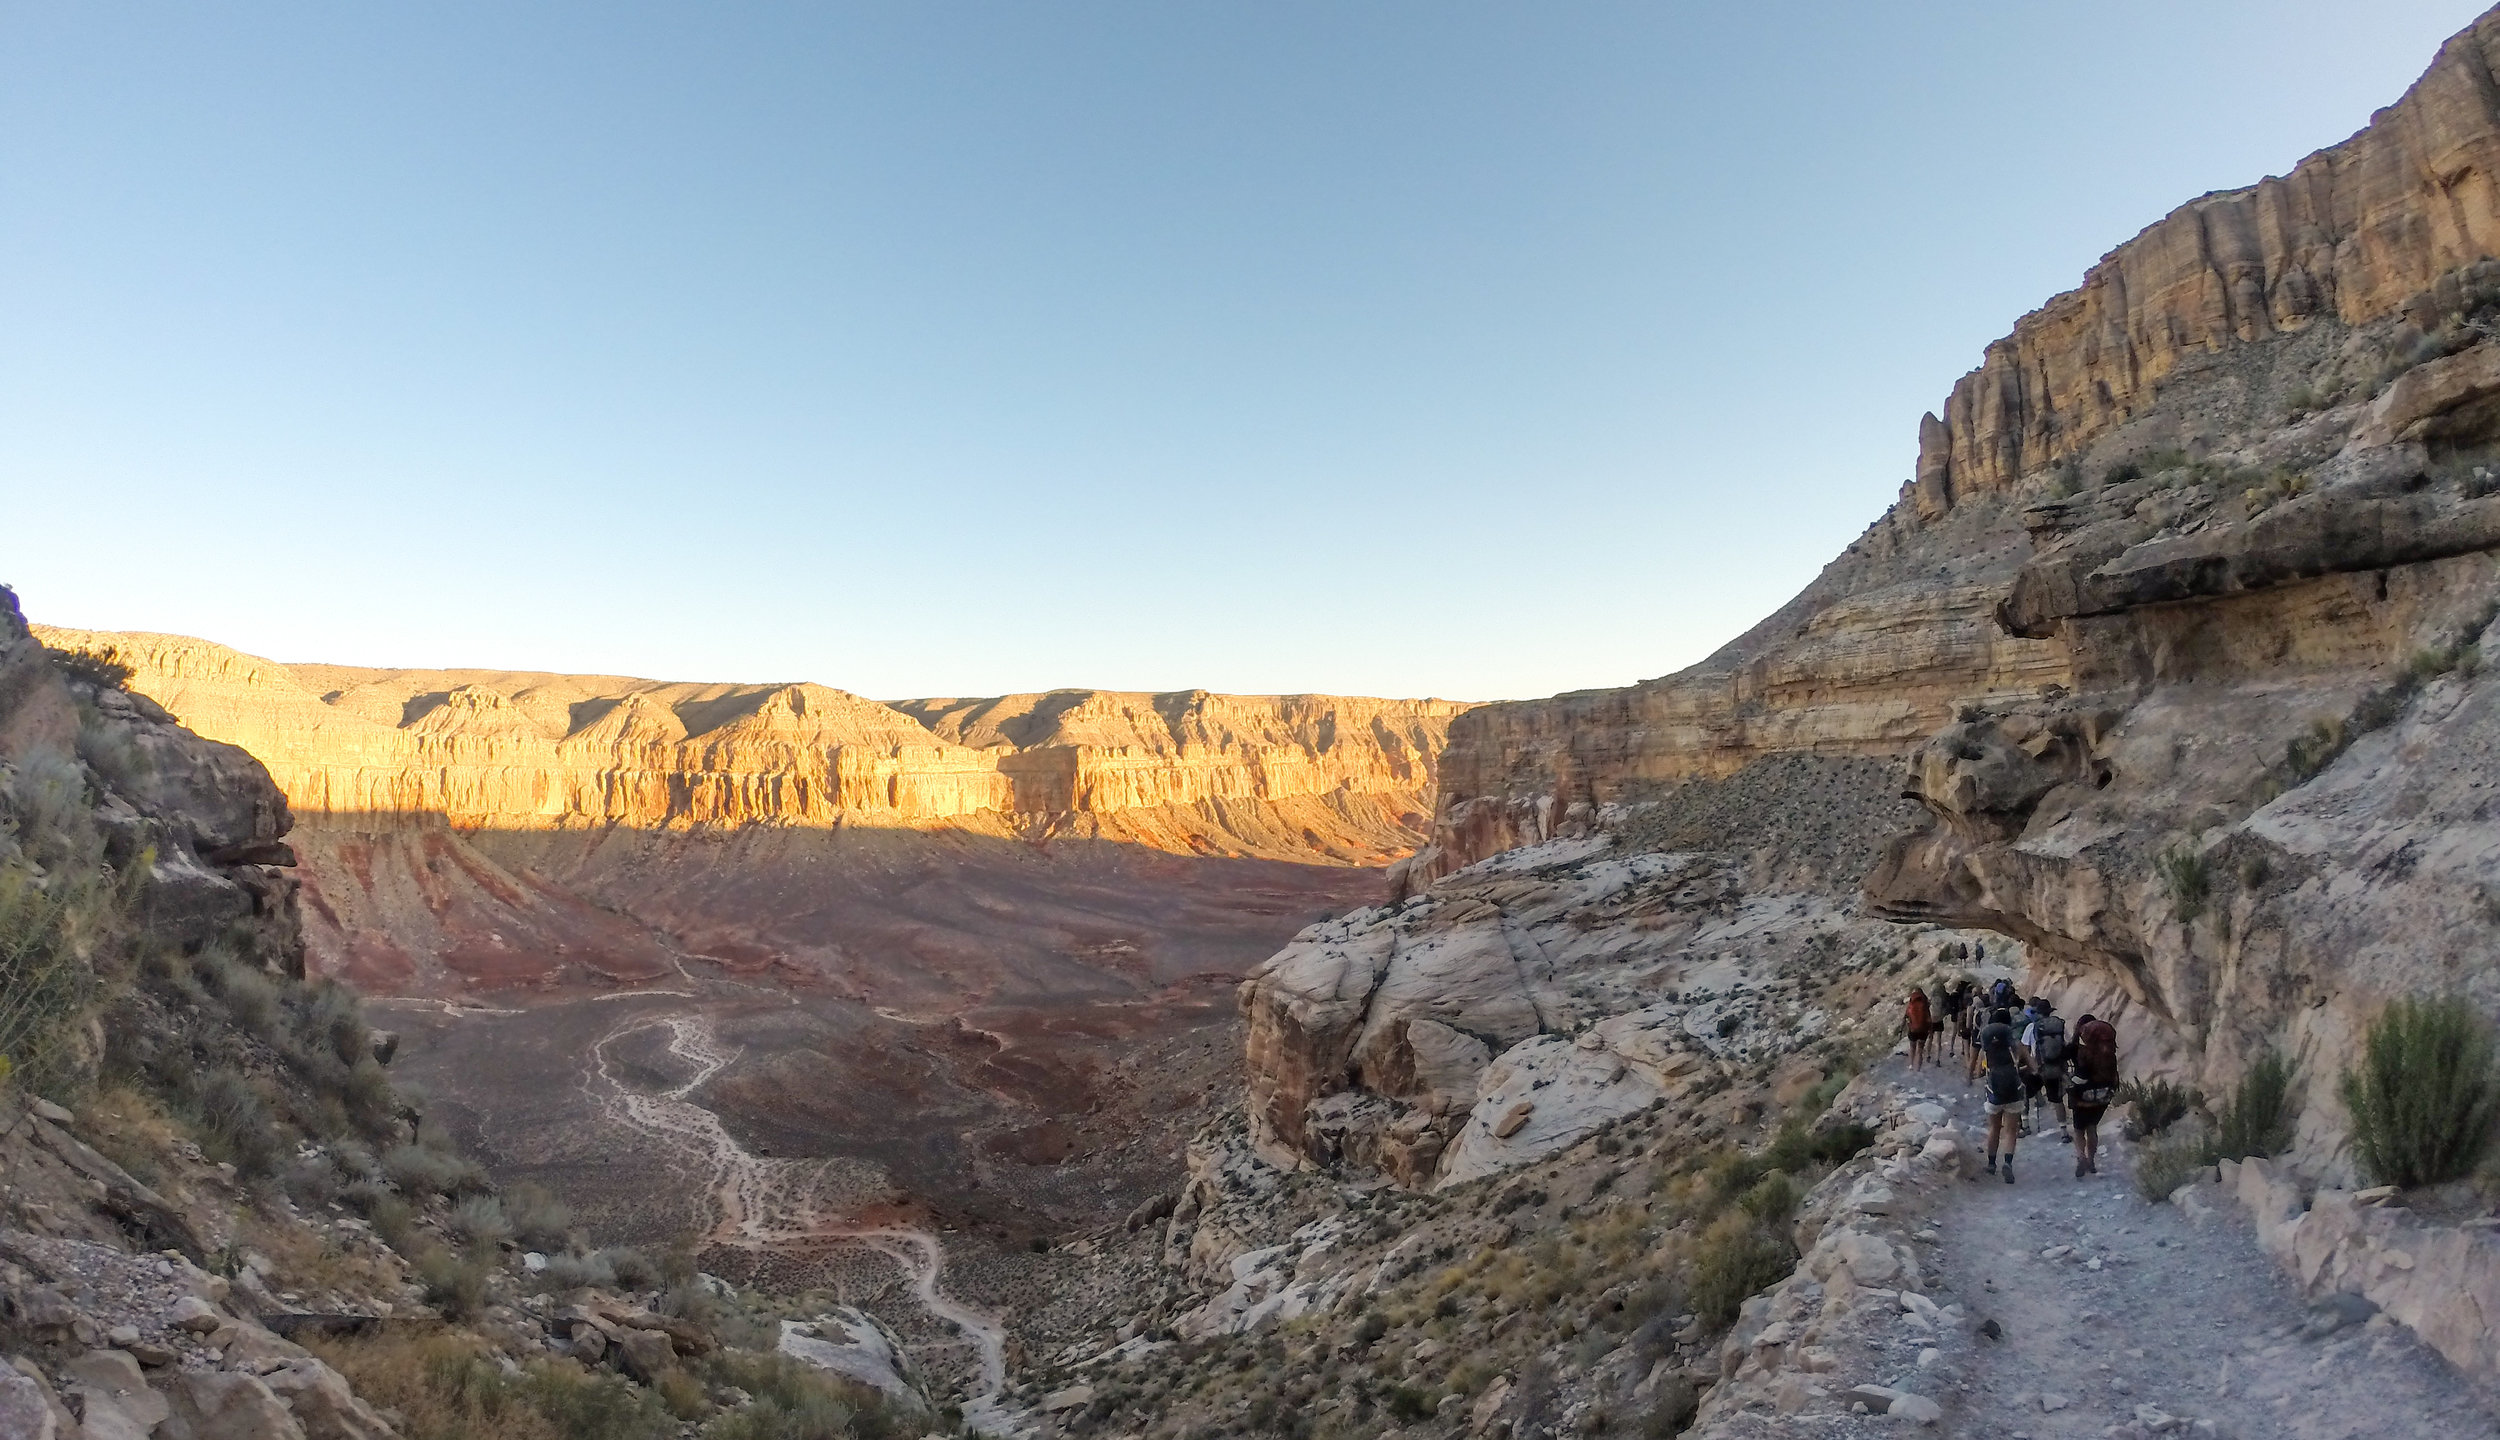 Sunrise in the canyon.